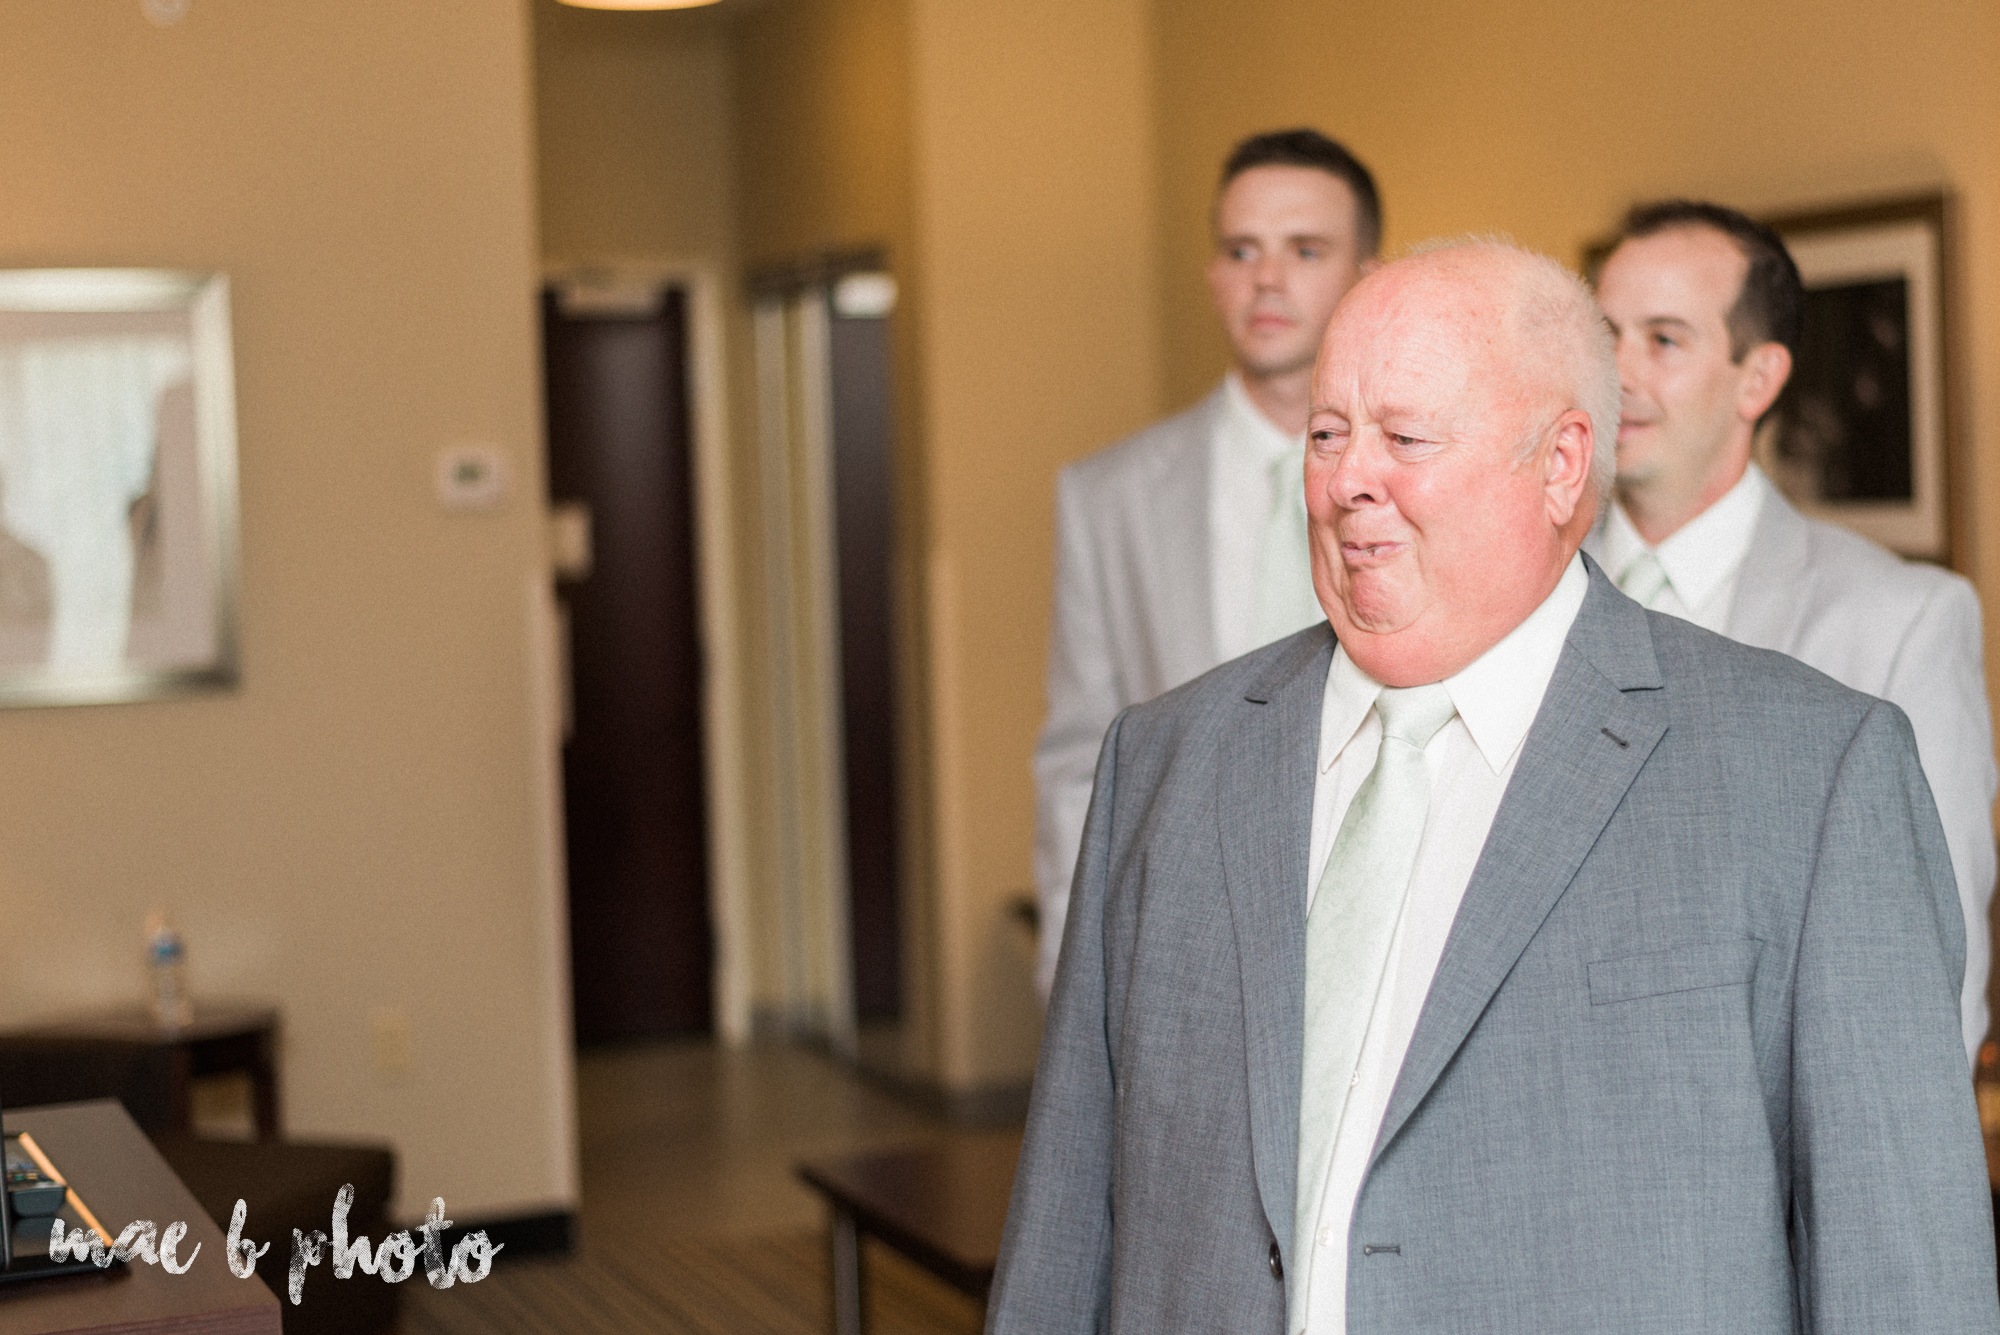 emily and michael's industrial chic summer country club wedding at the lake club in poland ohio photographed by cleveland wedding photographer mae b photo-43.jpg